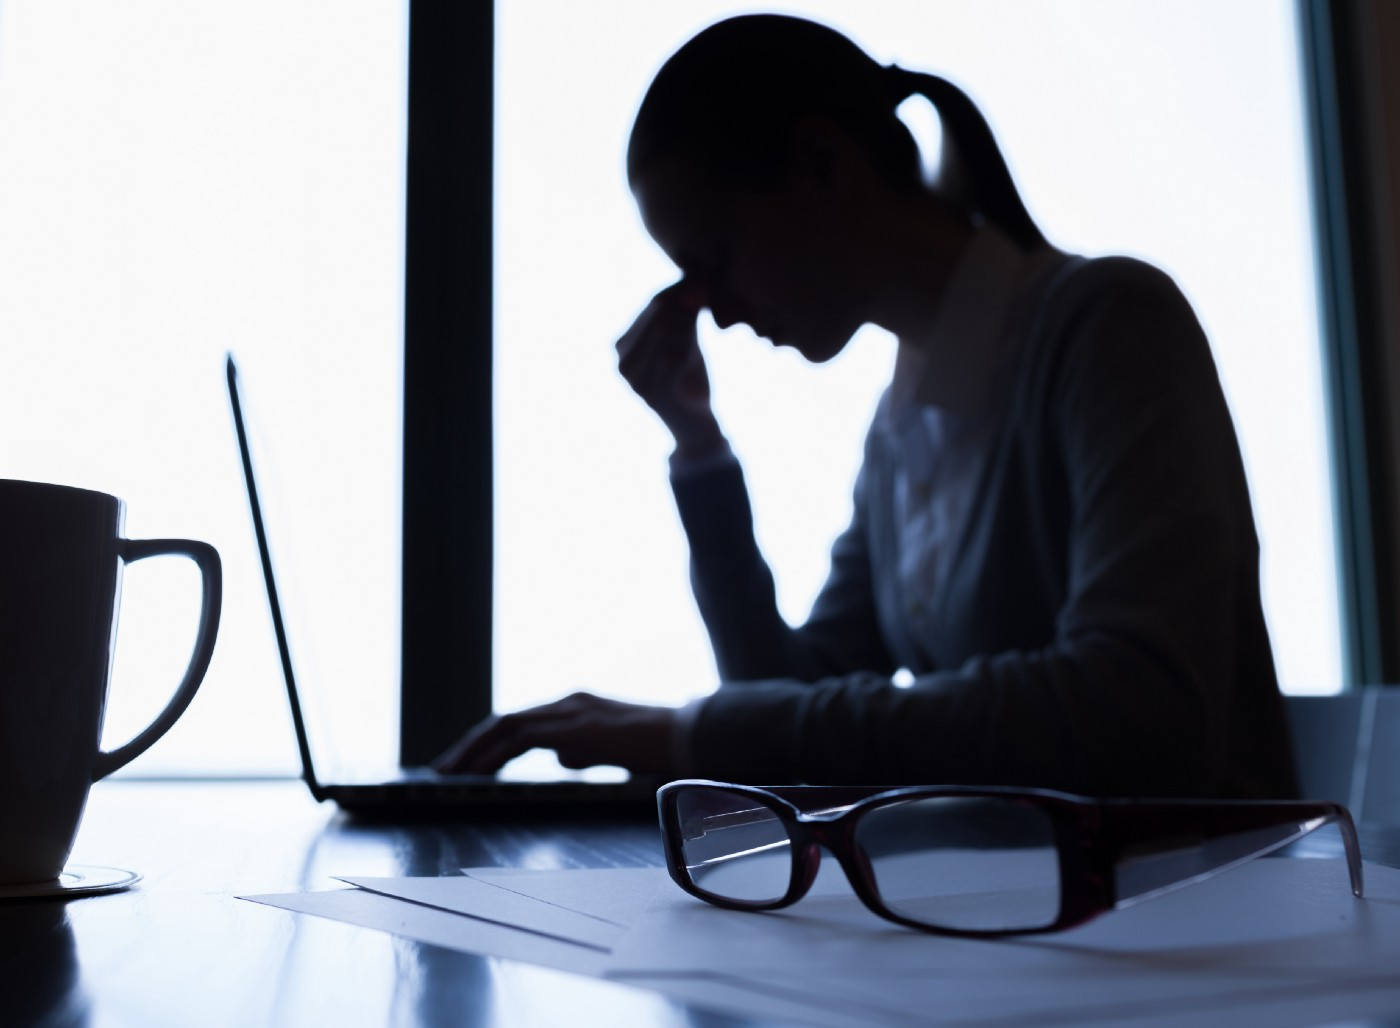 Image of sad, depressed woman at her desk, laptop open with coffee cup and reading glasses in foreground.